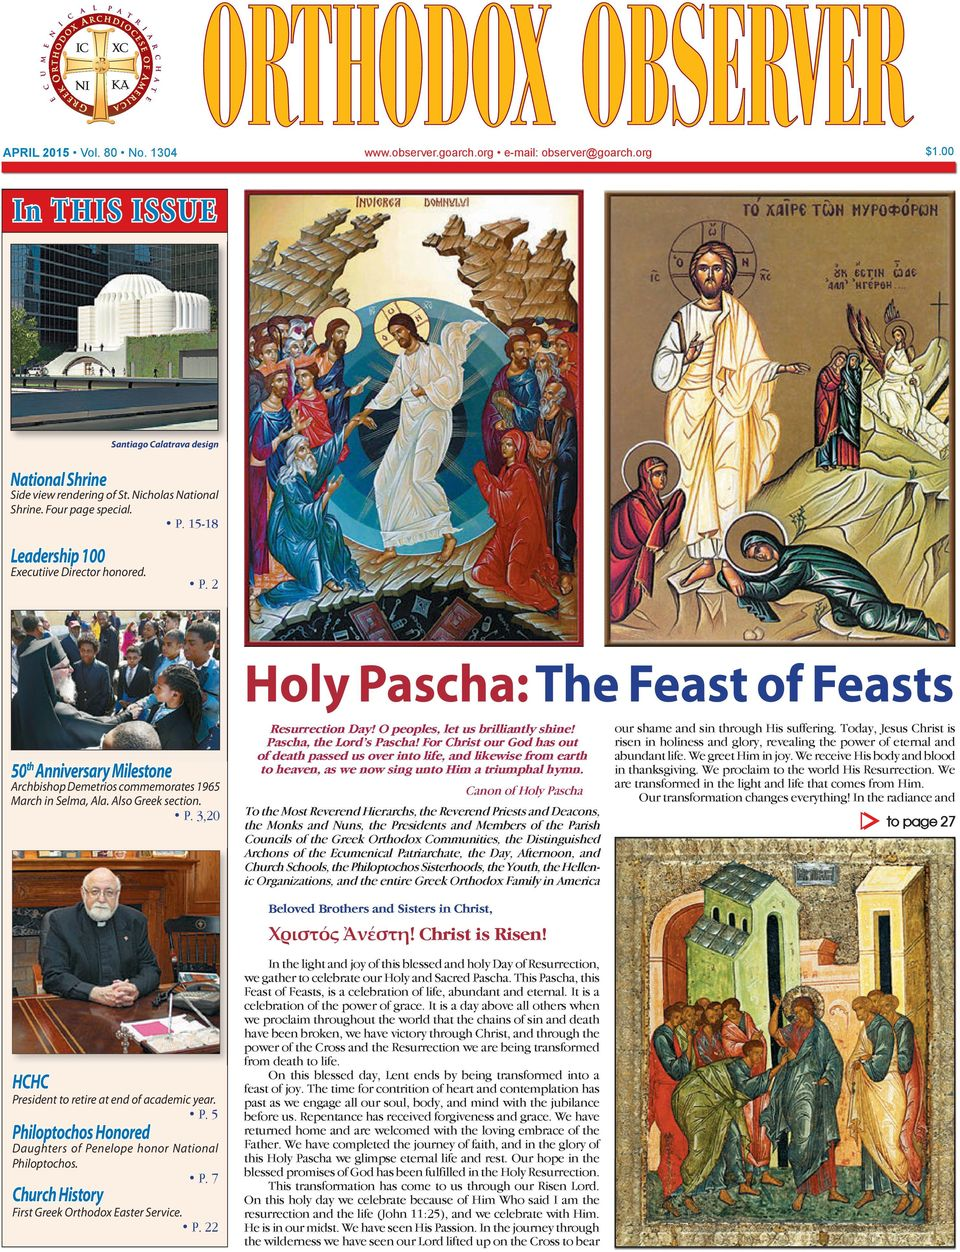 Also Greek section. P. 3,20 HCHC President to retire at end of academic year. P. 5 Philoptochos Honored Daughters of Penelope honor National Philoptochos. P. 7 Church History First Greek Orthodox Easter Service.